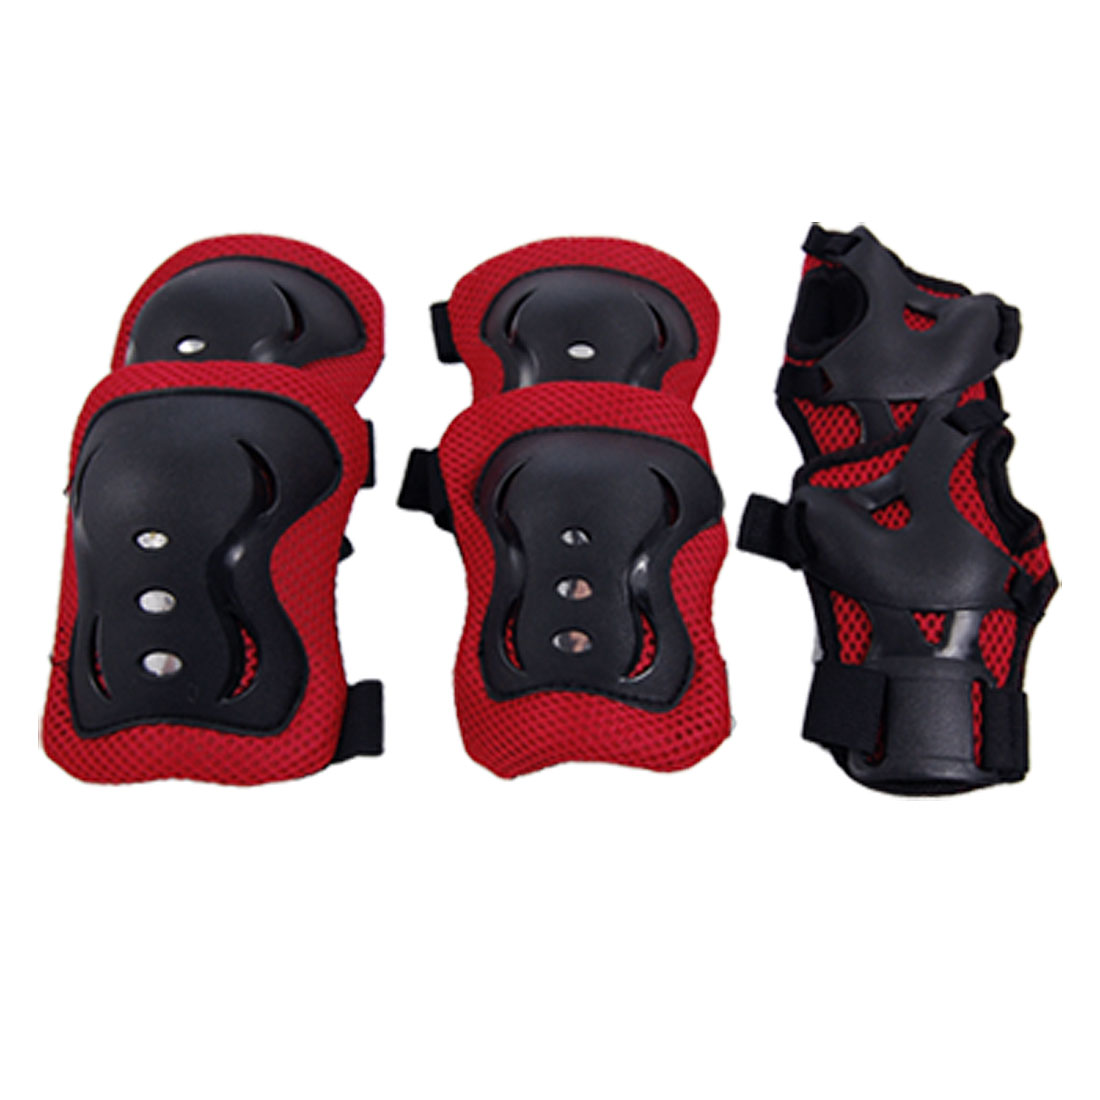 3 Pair Children Kids Red Black Elbow Knee Palm Protector Support